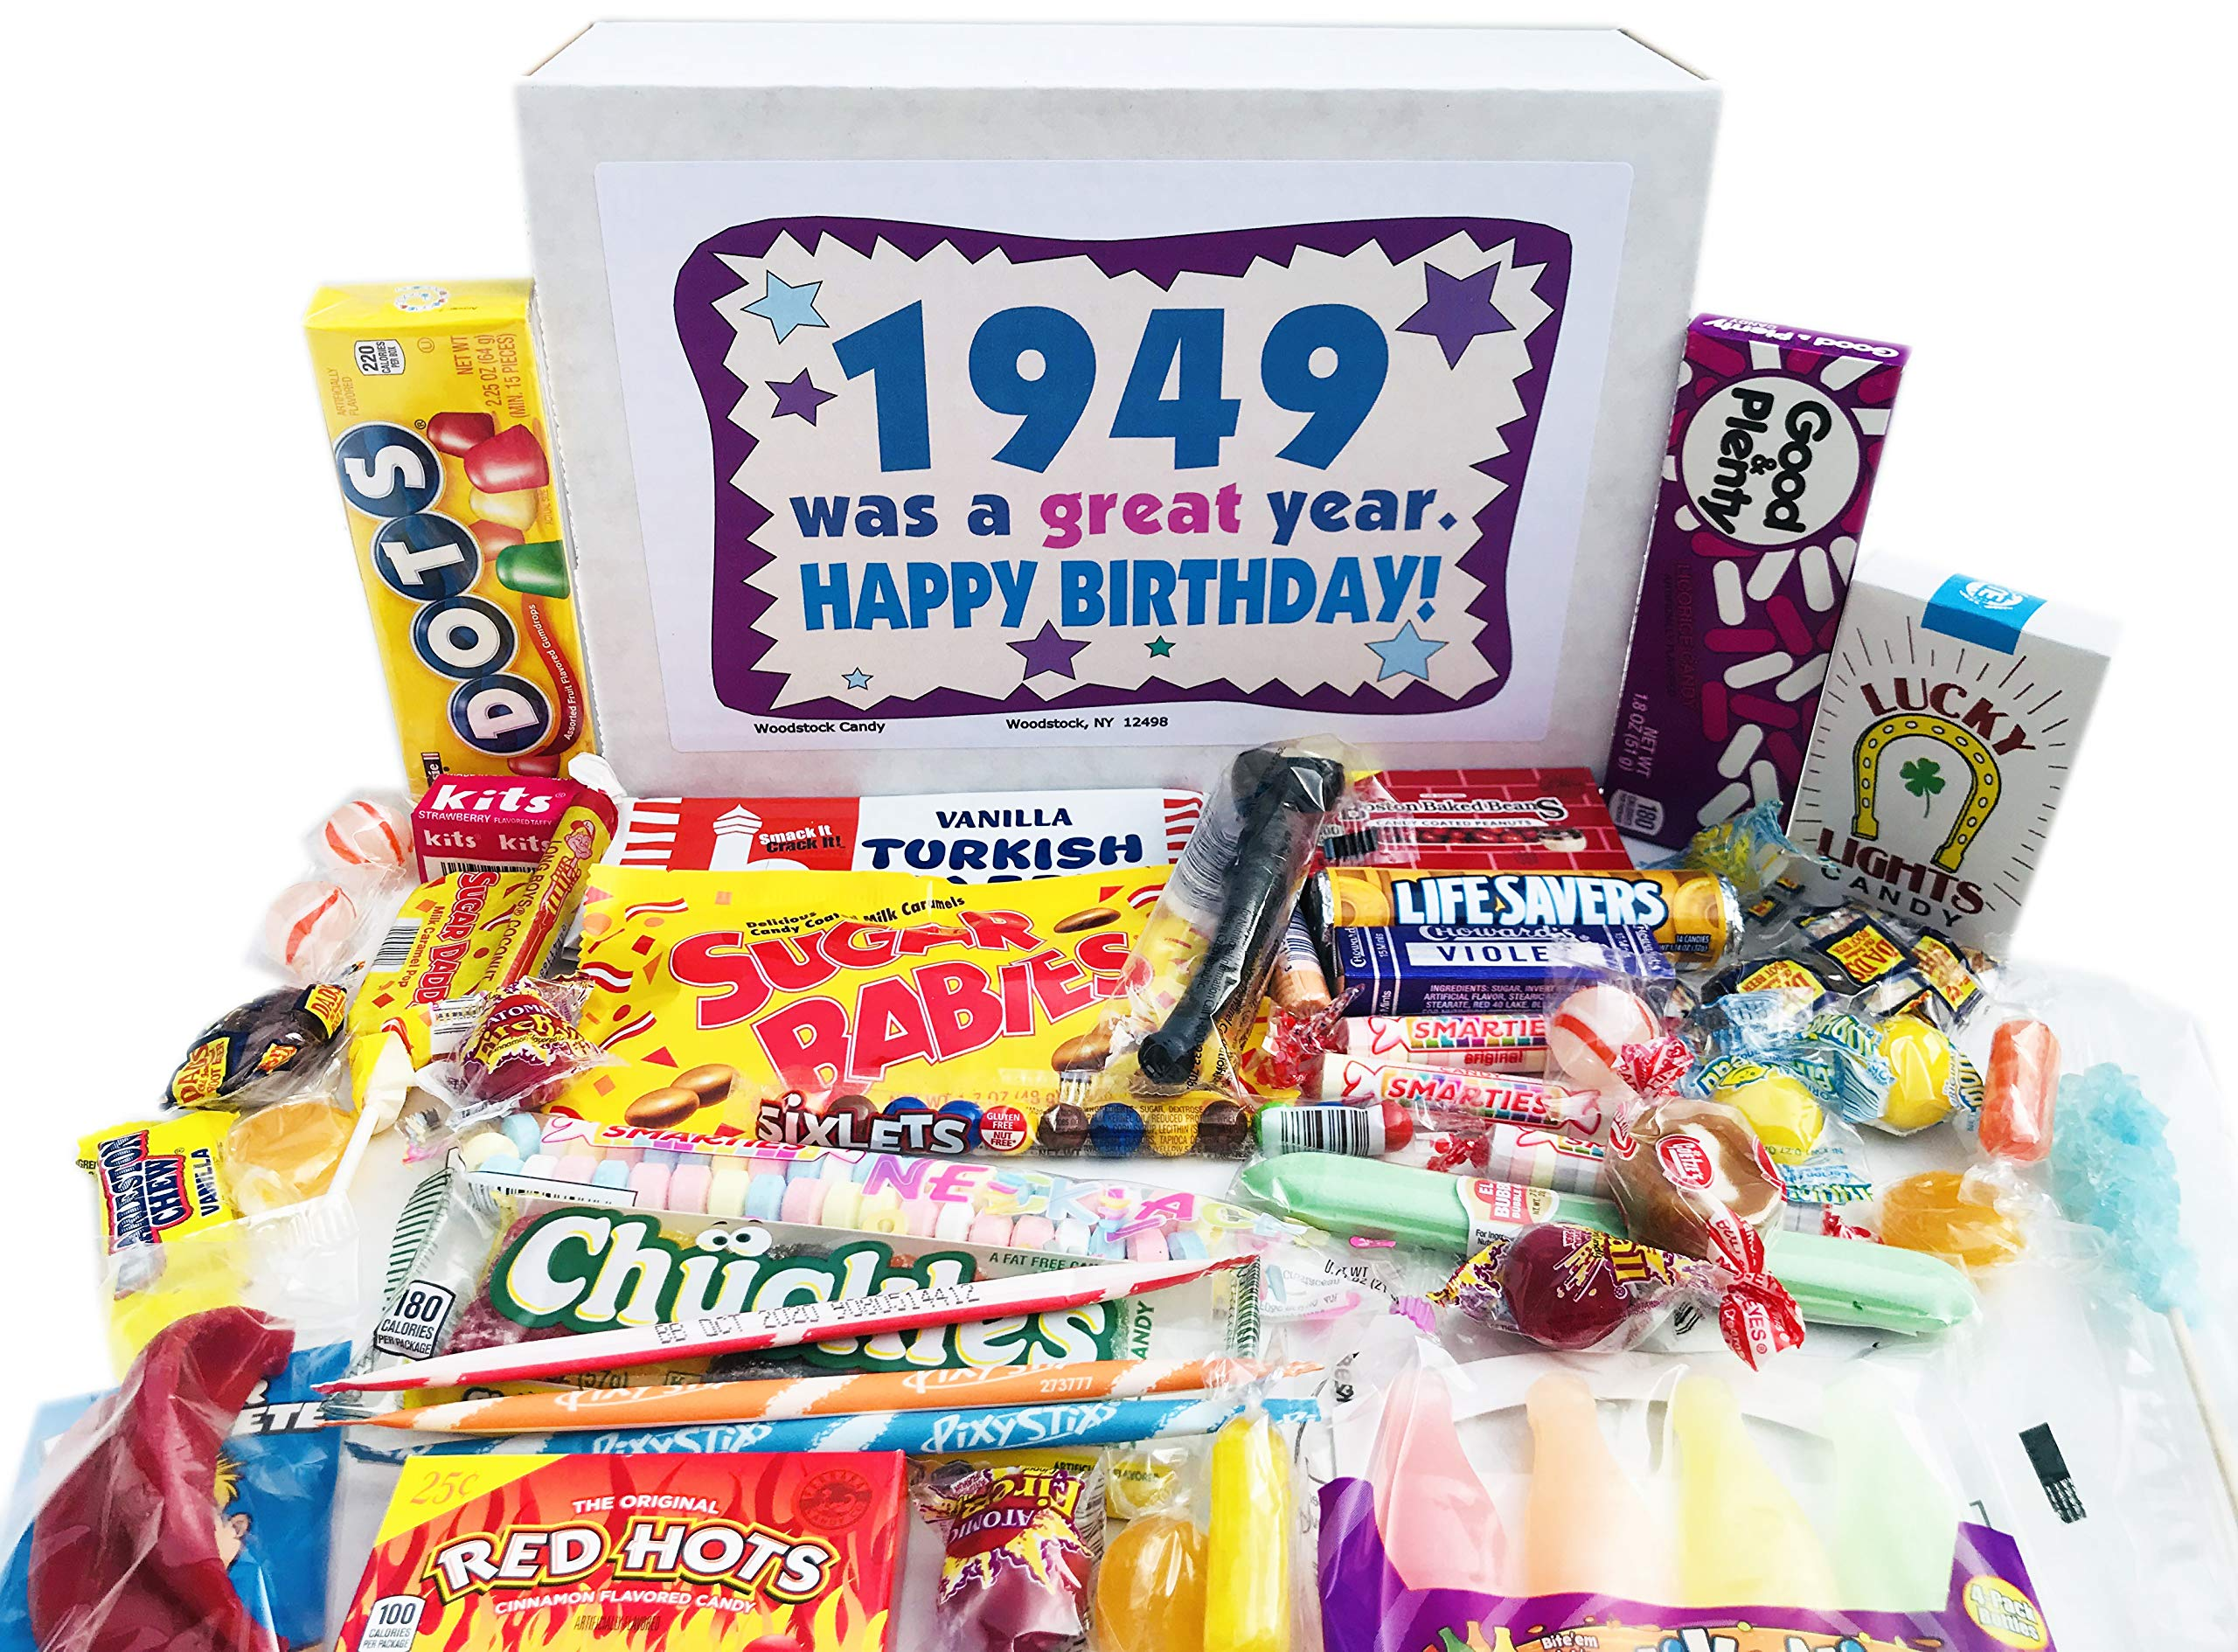 Woodstock Candy 1949 70th Birthday Gift Box of Retro Vintage Candy Assortment from Childhood for 70 Year Old Men and Women Born 1949 - Great Idea for Mom or Dad - Jr by Woodstock Candy